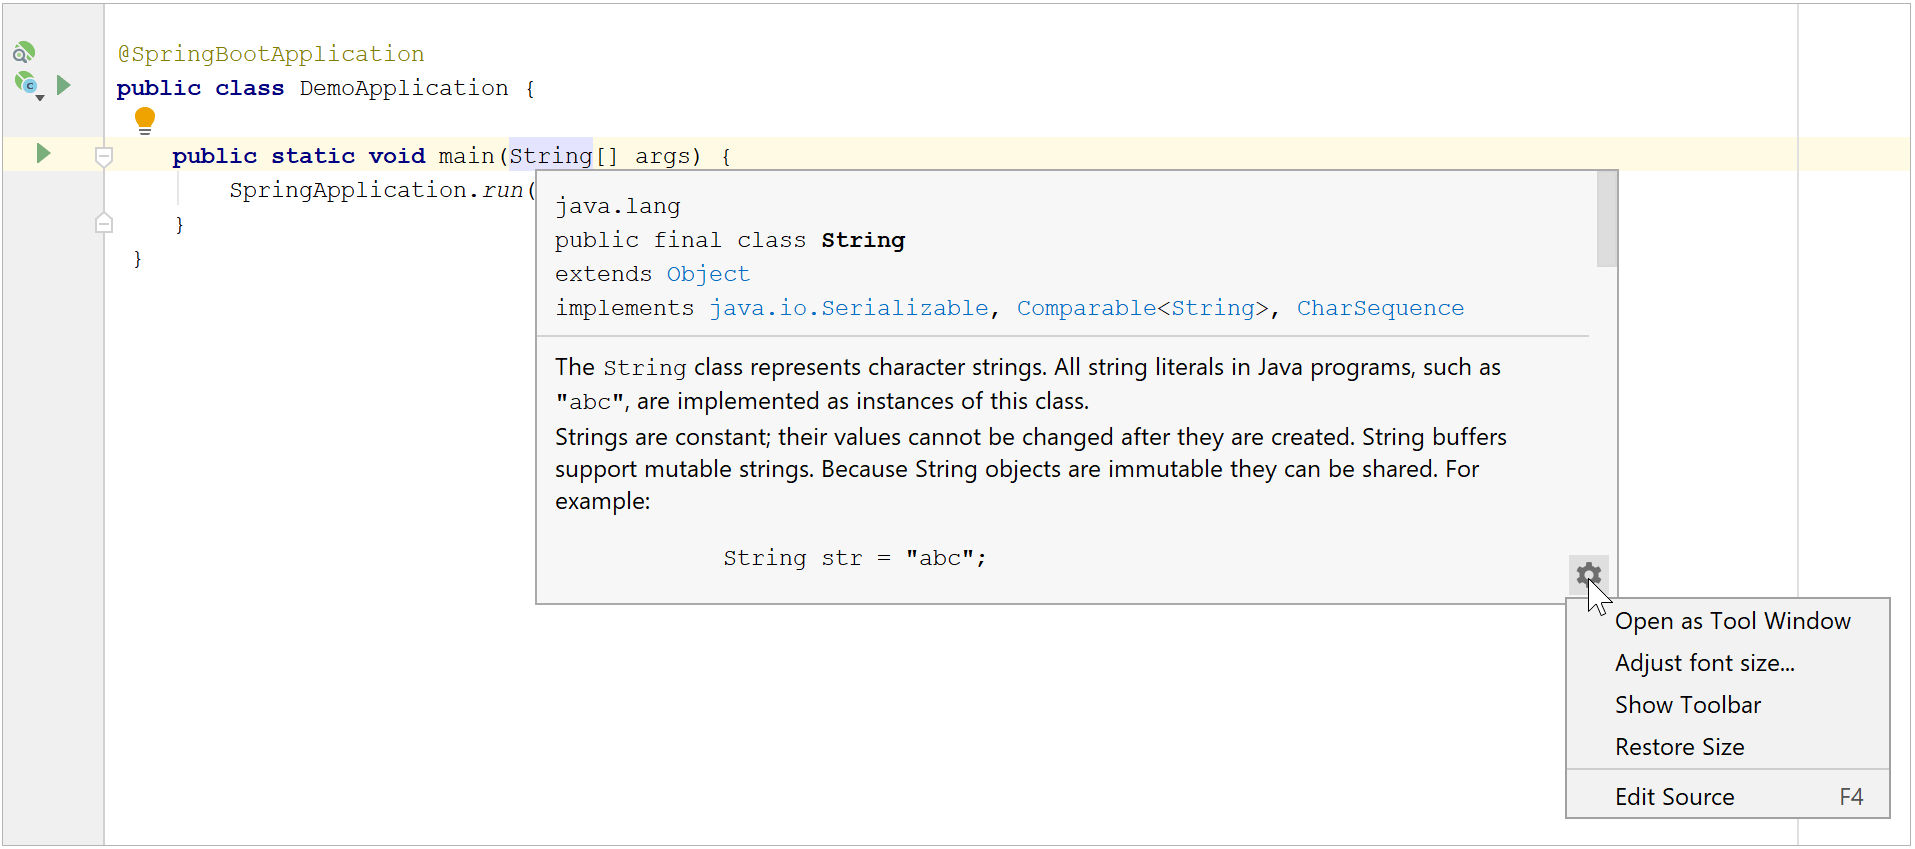 Code reference information - Help | IntelliJ IDEA